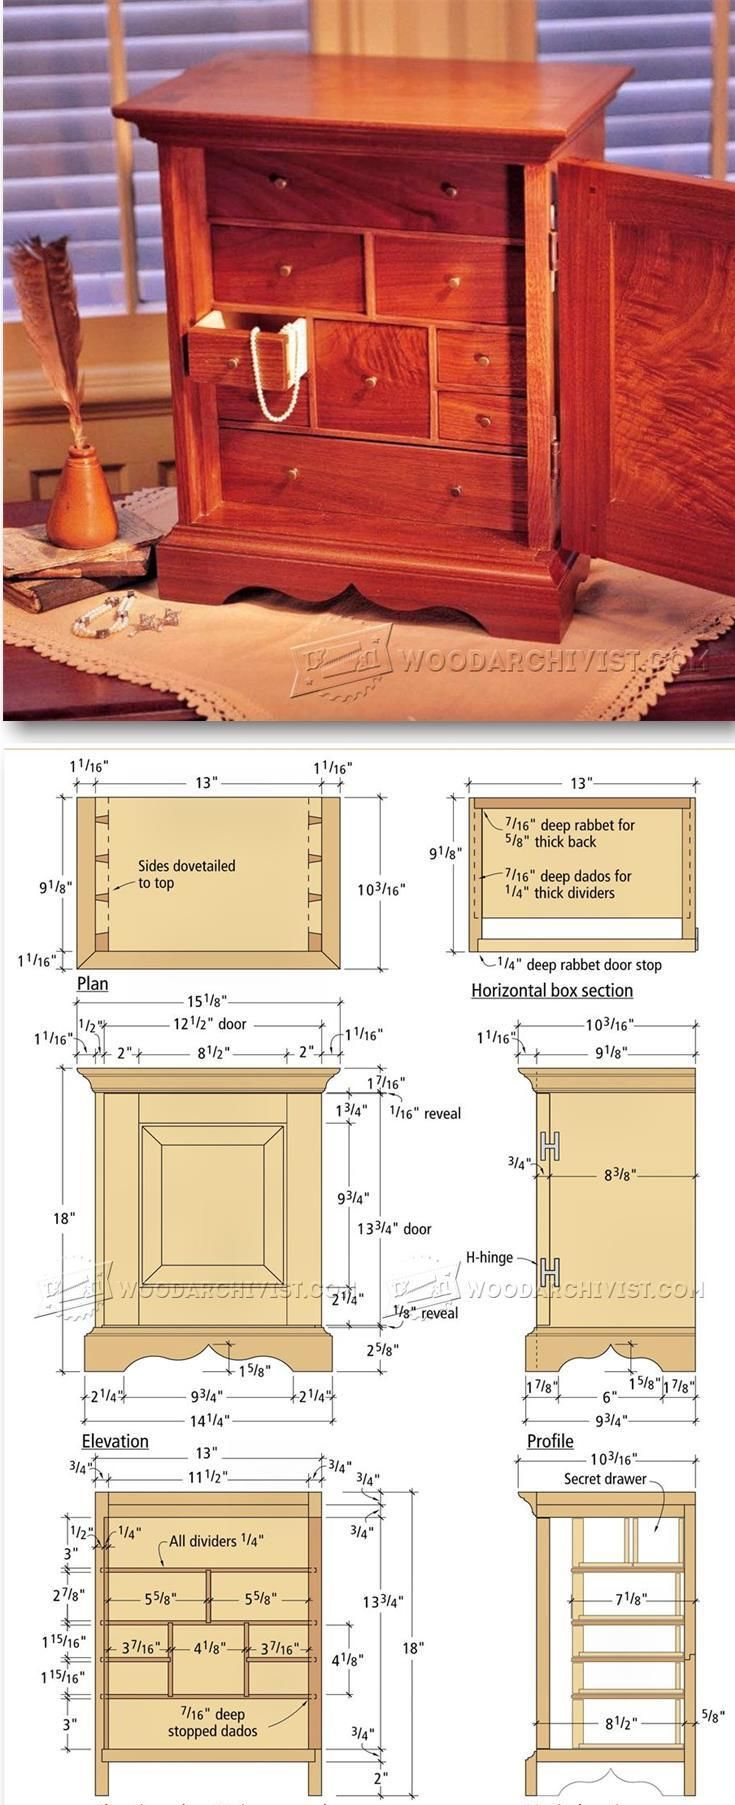 New Mikutowski Woodworking Jewelry Boxes  WoodWorking Projects Amp Plans